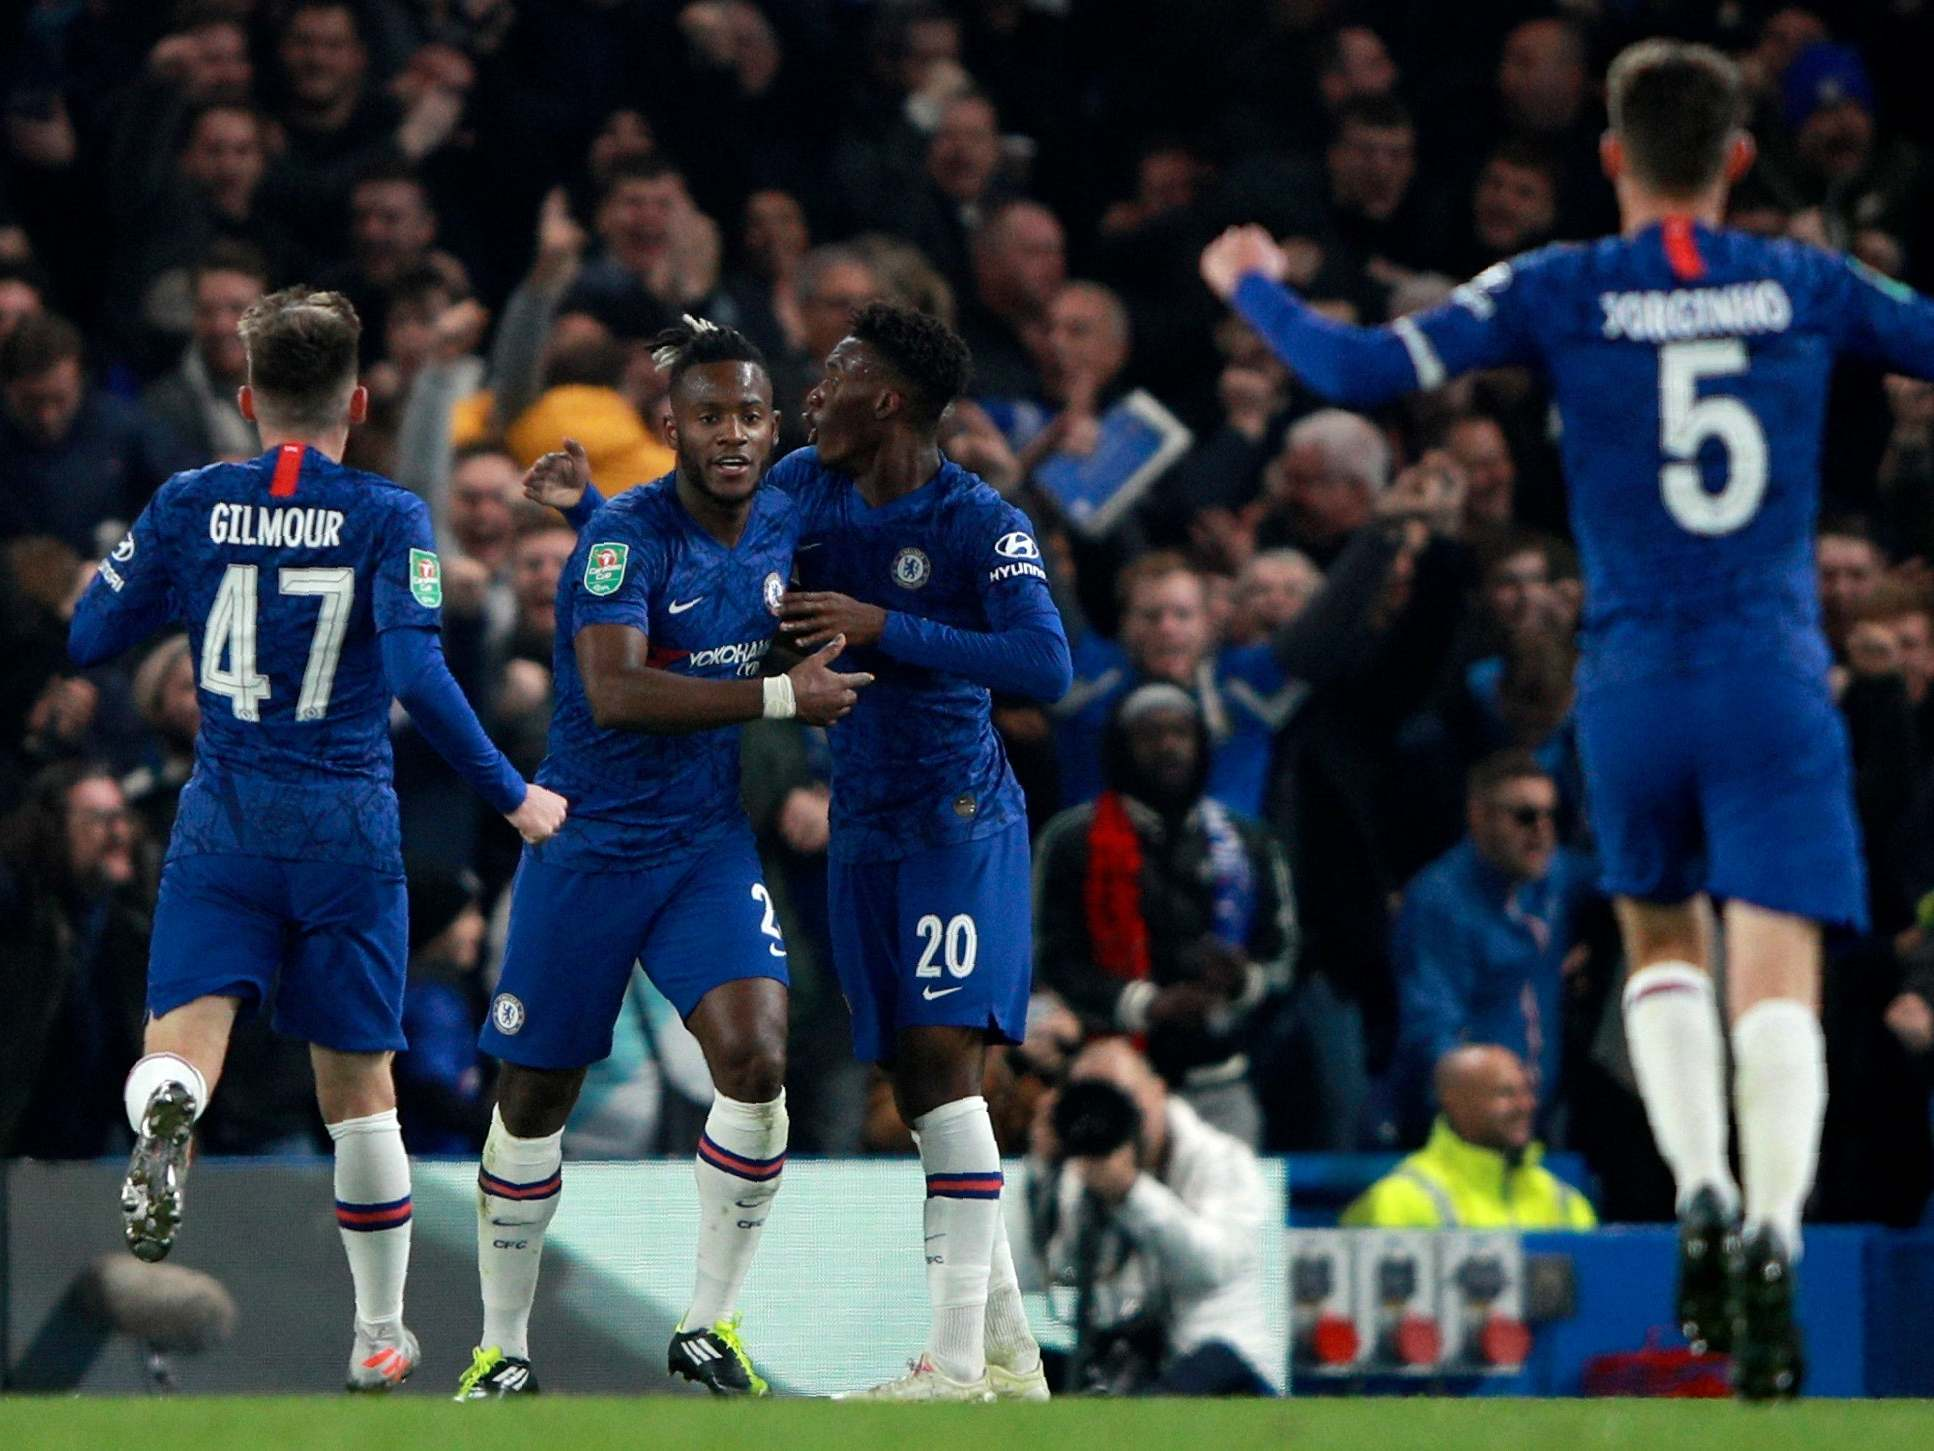 Chelsea vs Manchester United LIVE: Score. goals and latest updates from Carabao Cup fourth round | The Independent